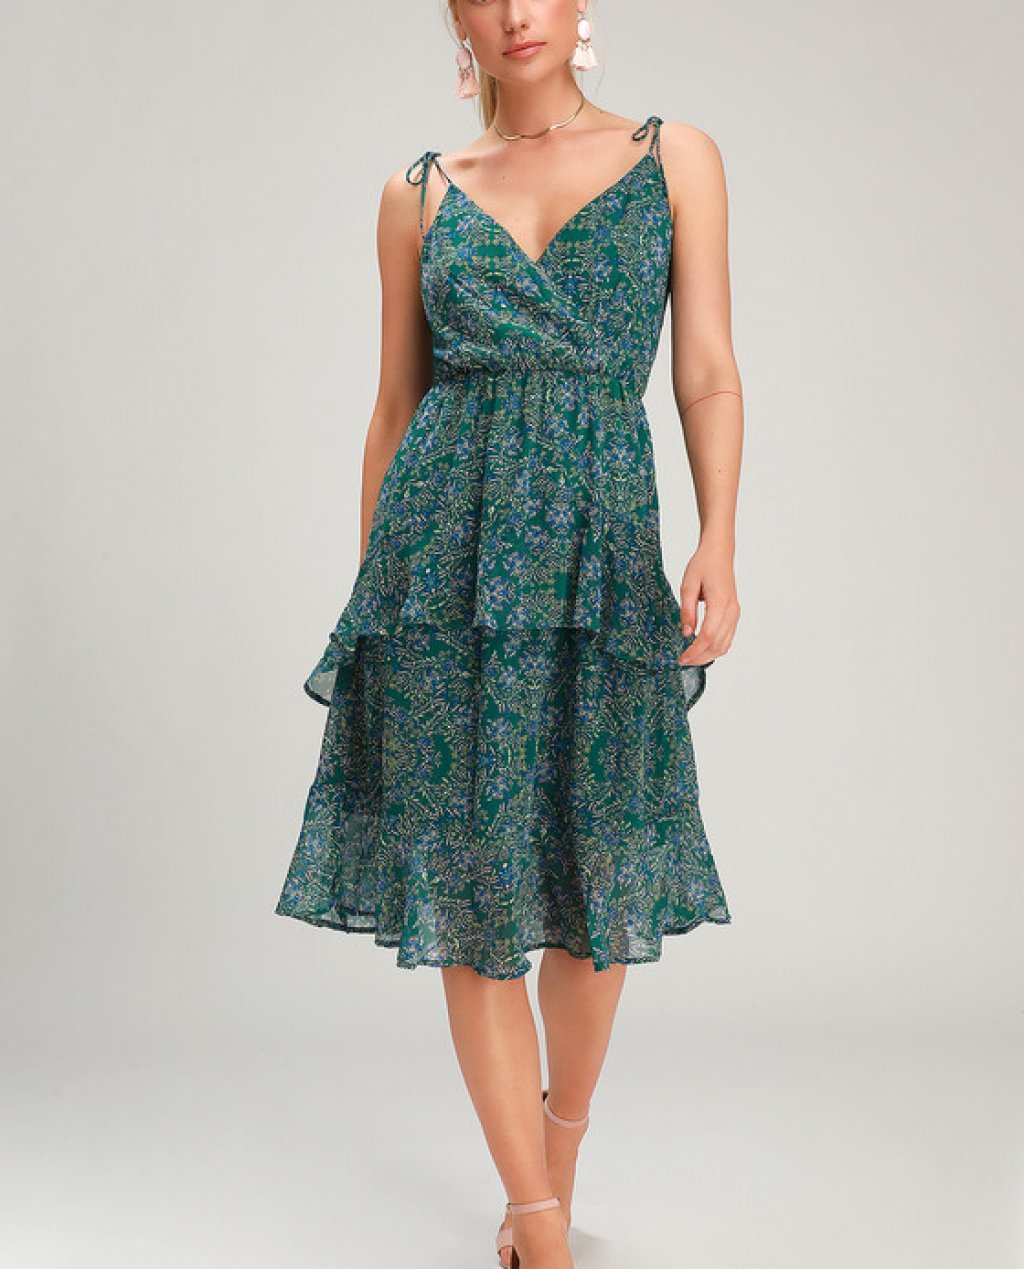 Loveable Lucille Green Floral Print Chiffon Midi Dress